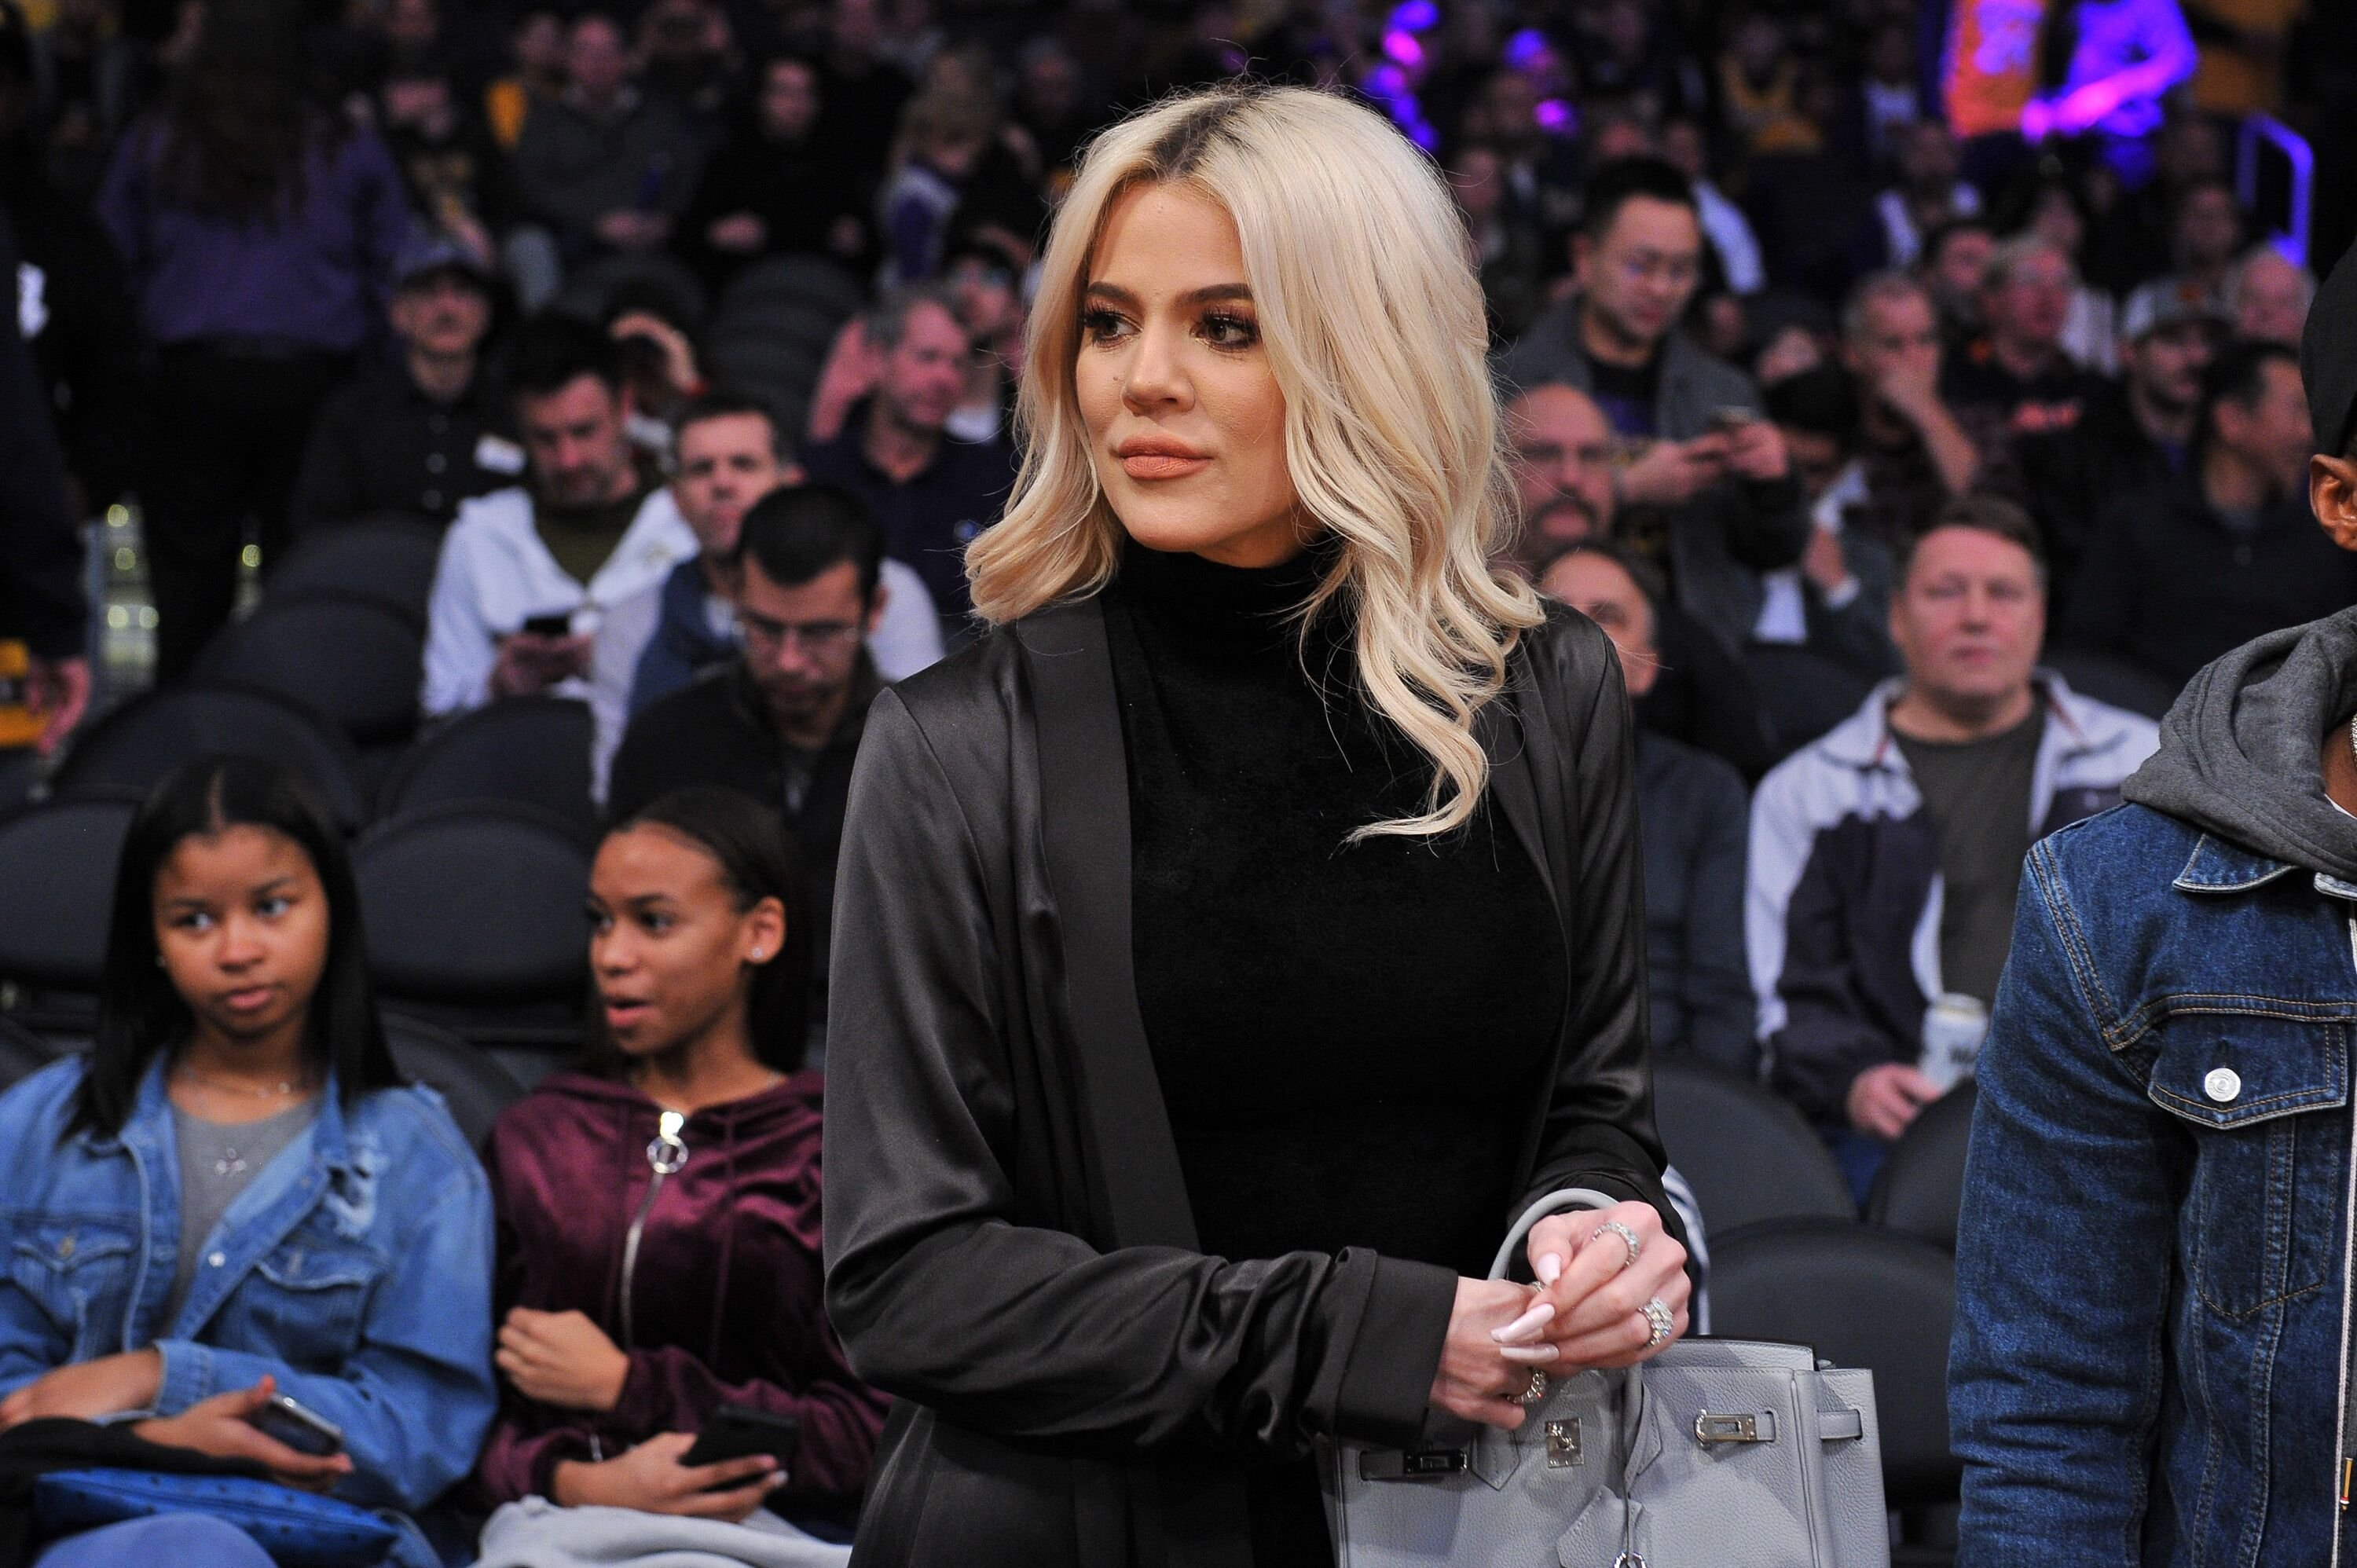 Khloe Kardashian at a basketball game between the Los Angeles Lakers and the Cleveland Cavaliers on January 13, 2019, in California | Photo: Allen Berezovsky/Getty Images